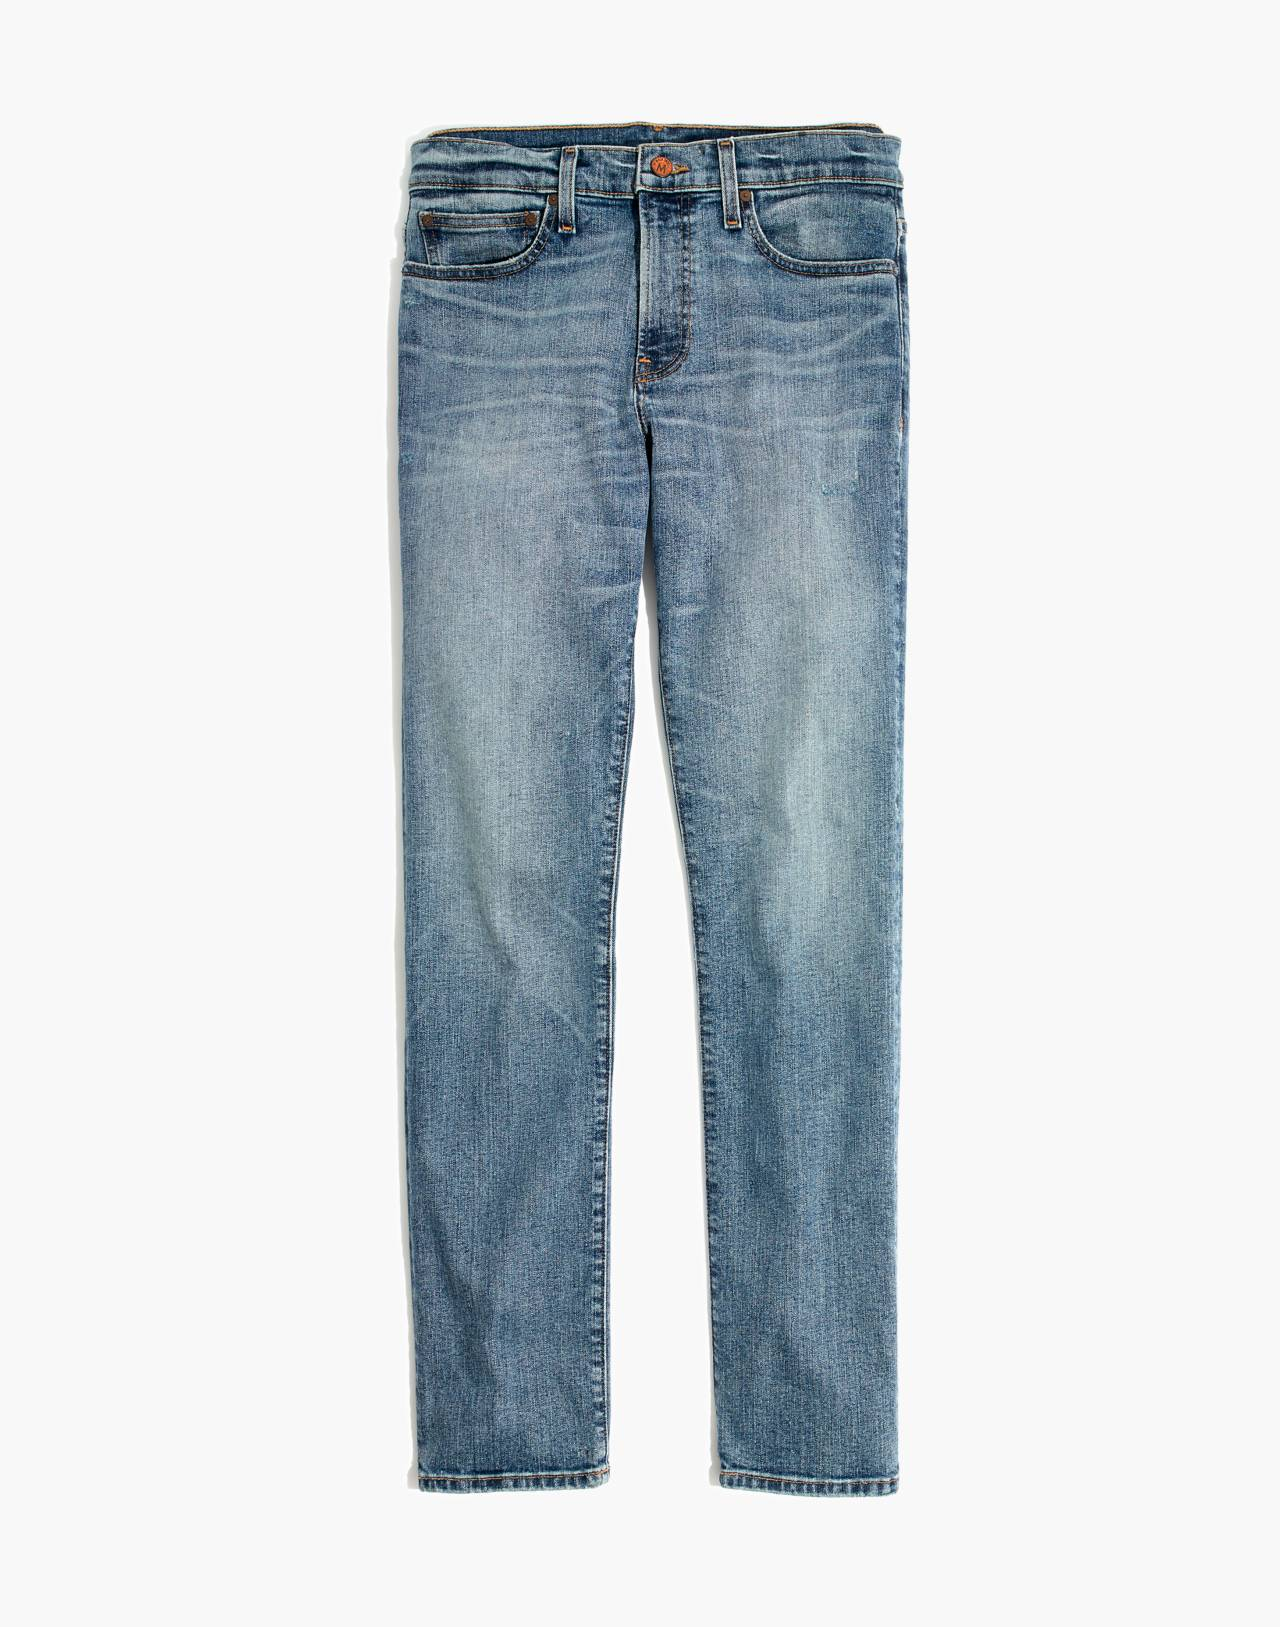 Slim Jeans in Santell Wash in santell image 4